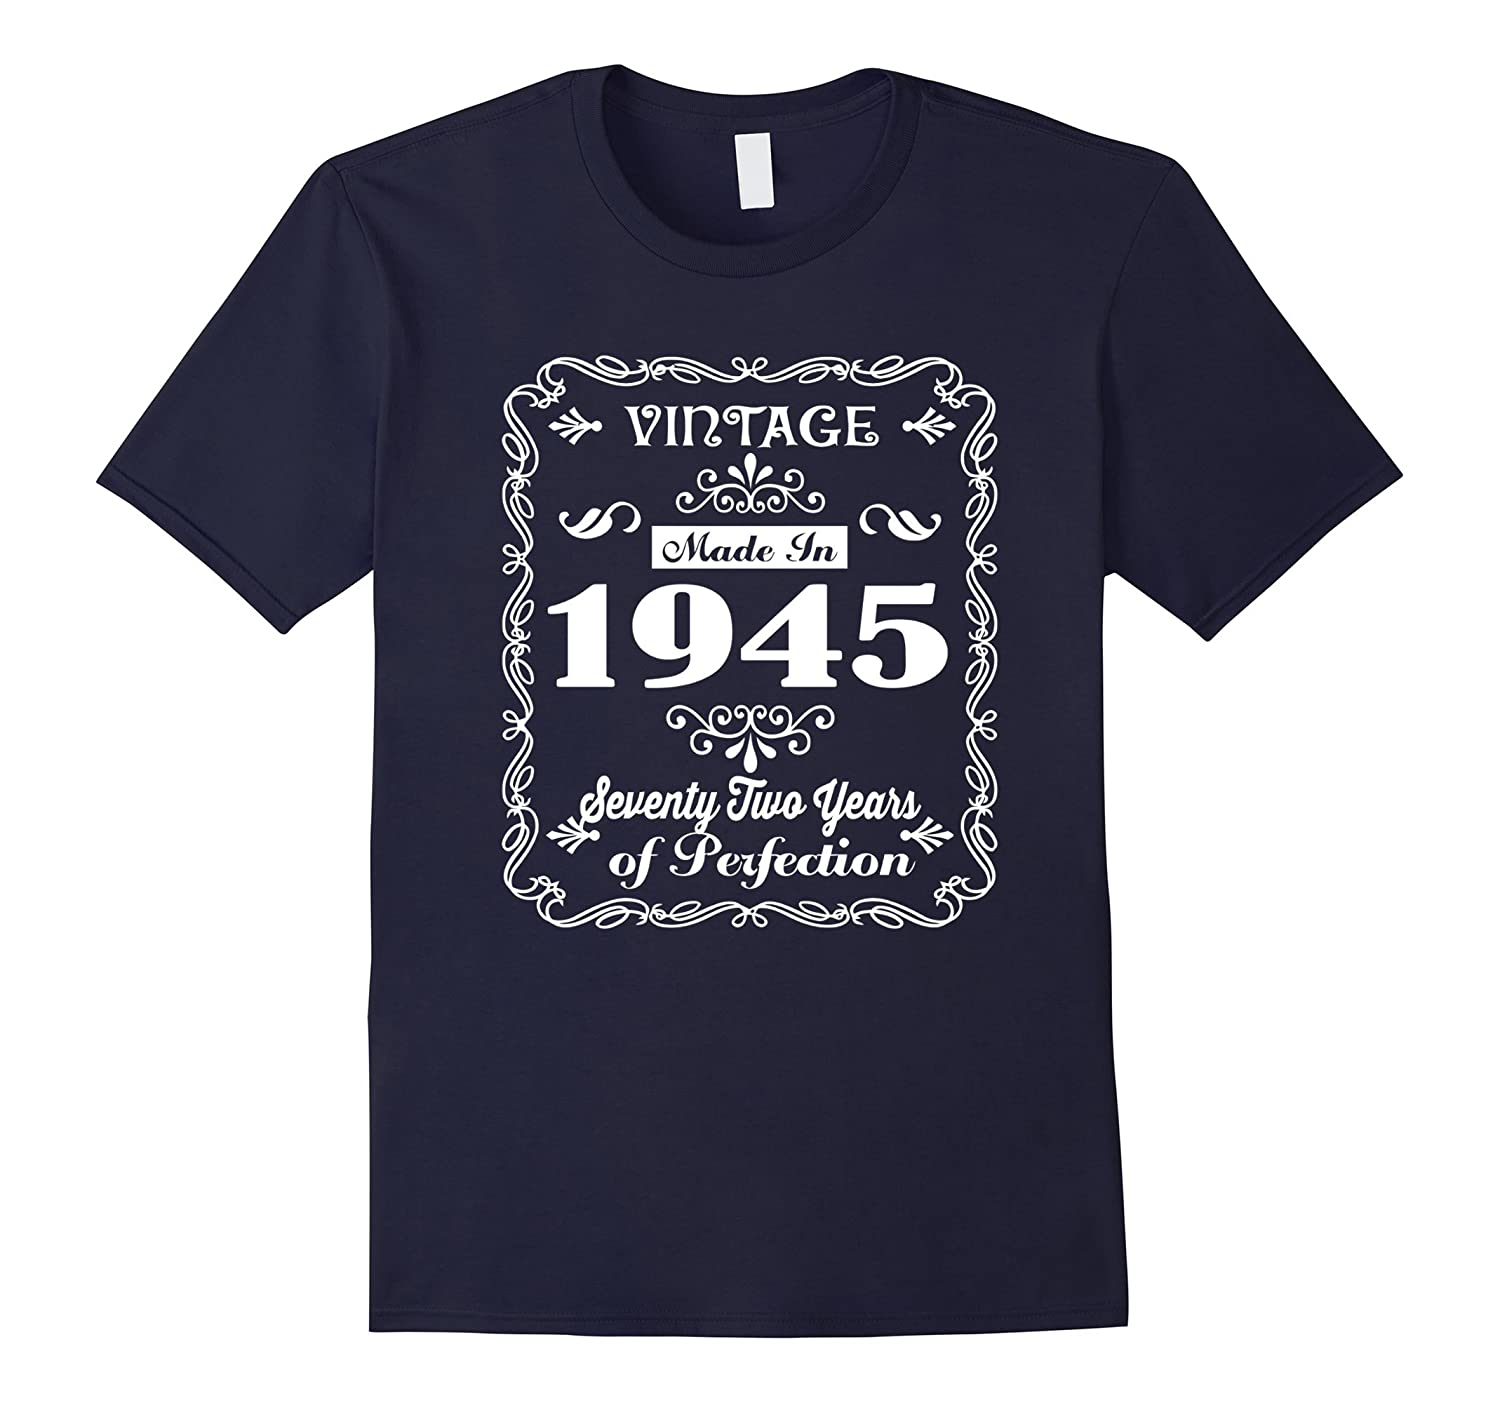 Made In 1945 T-Shirt 72th Birthday Gift T Shirt